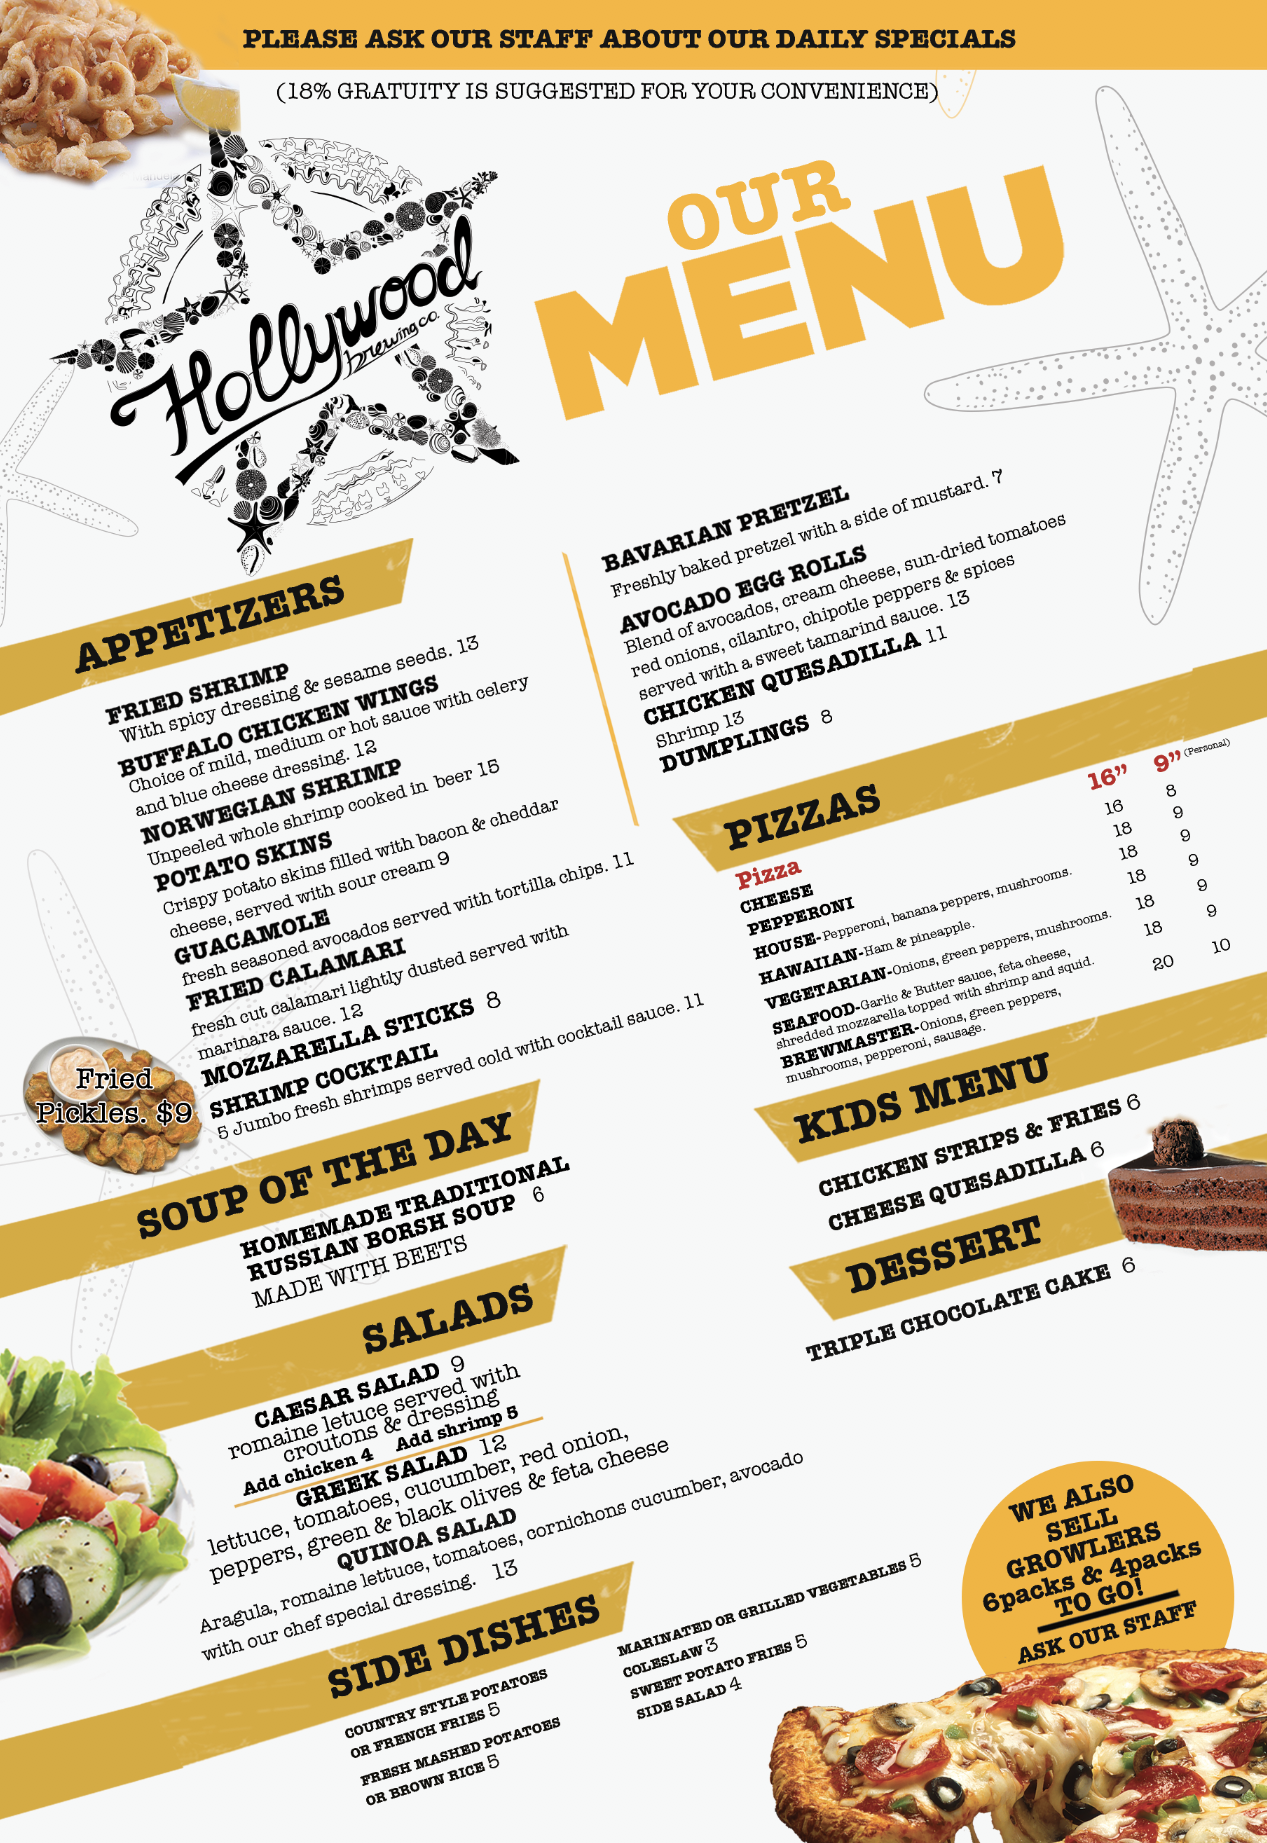 FOOD MENU SIDE 1 OF 2